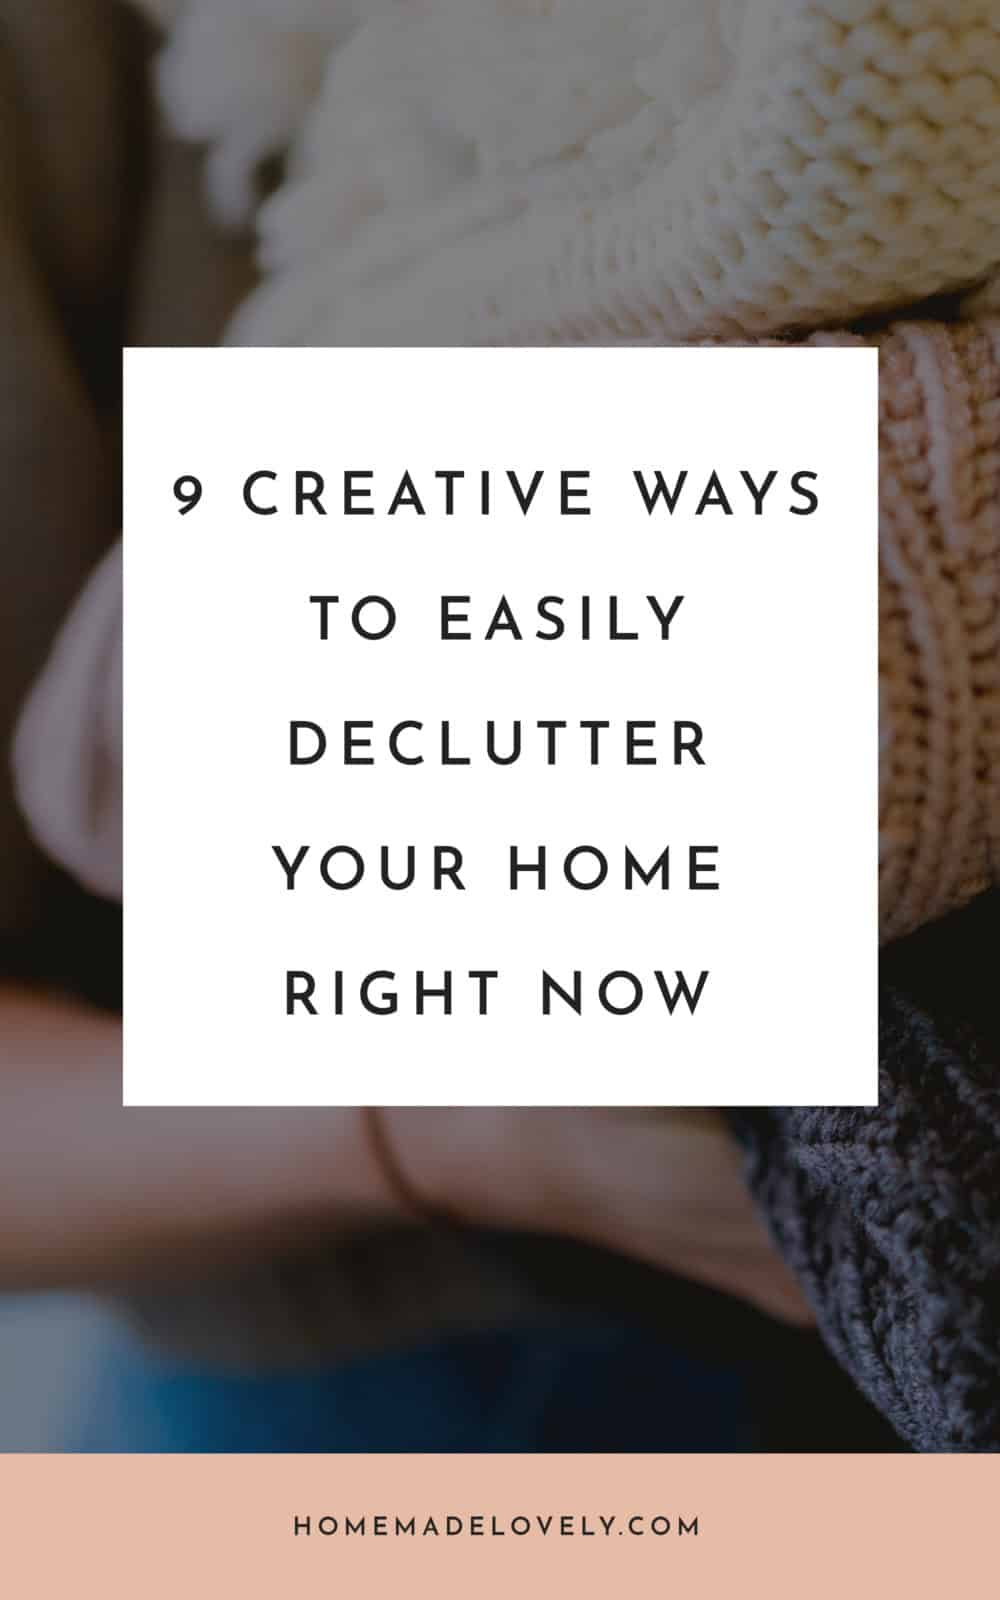 lady holding pile of sweaters with text overlay that says 9 Creative Ways to Easily Declutter Your Home Right Now